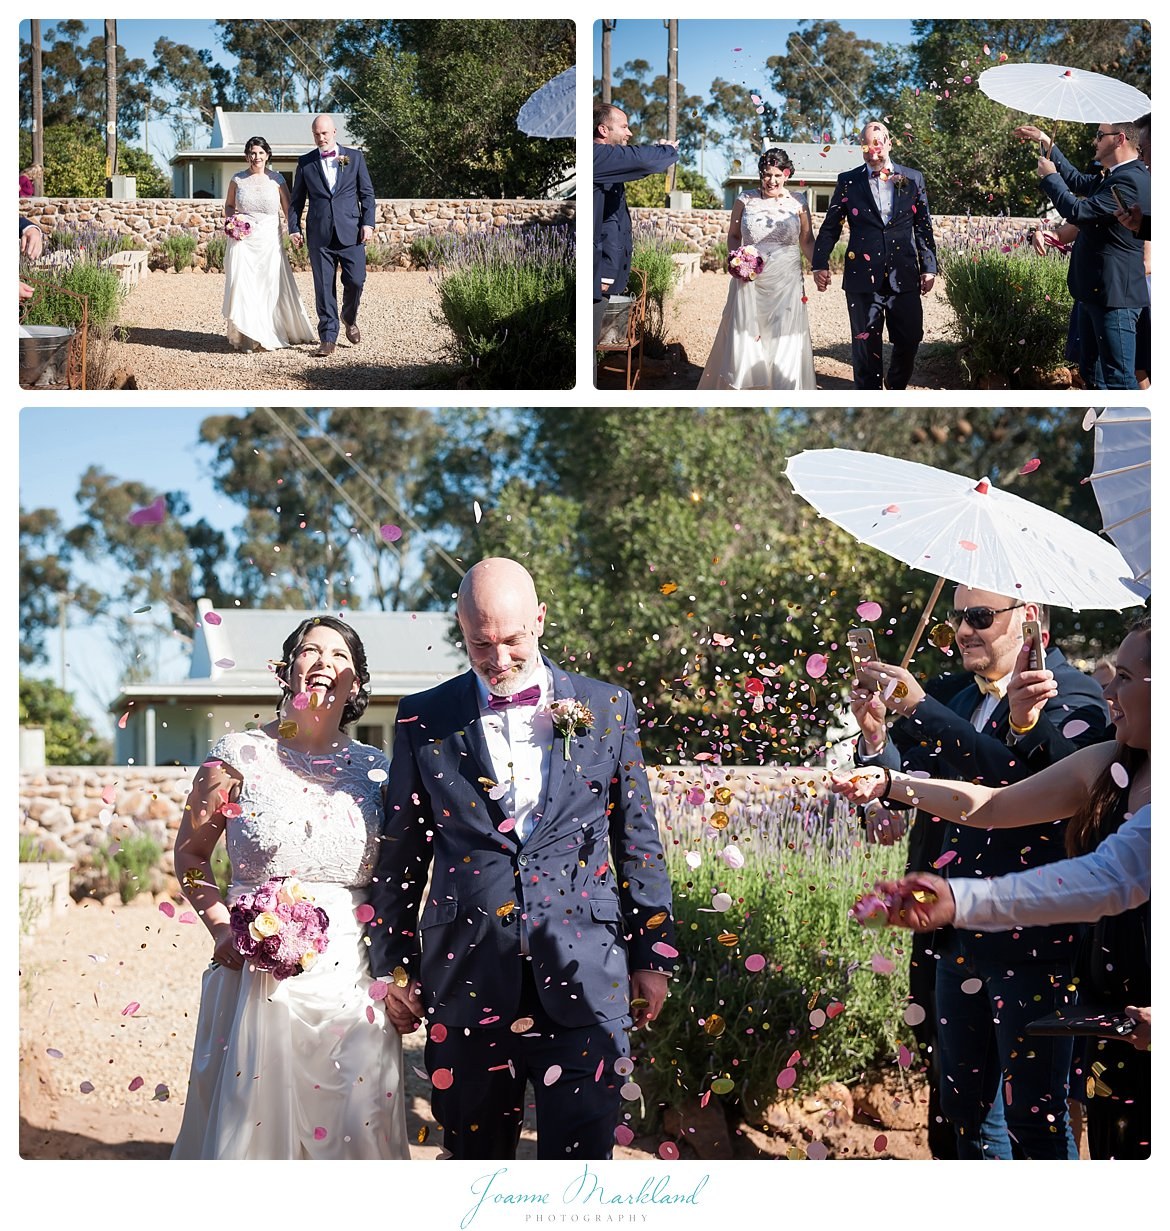 boorwater-wedding-hopefield-west-coast-cape-town-joanne-markland-photography-024